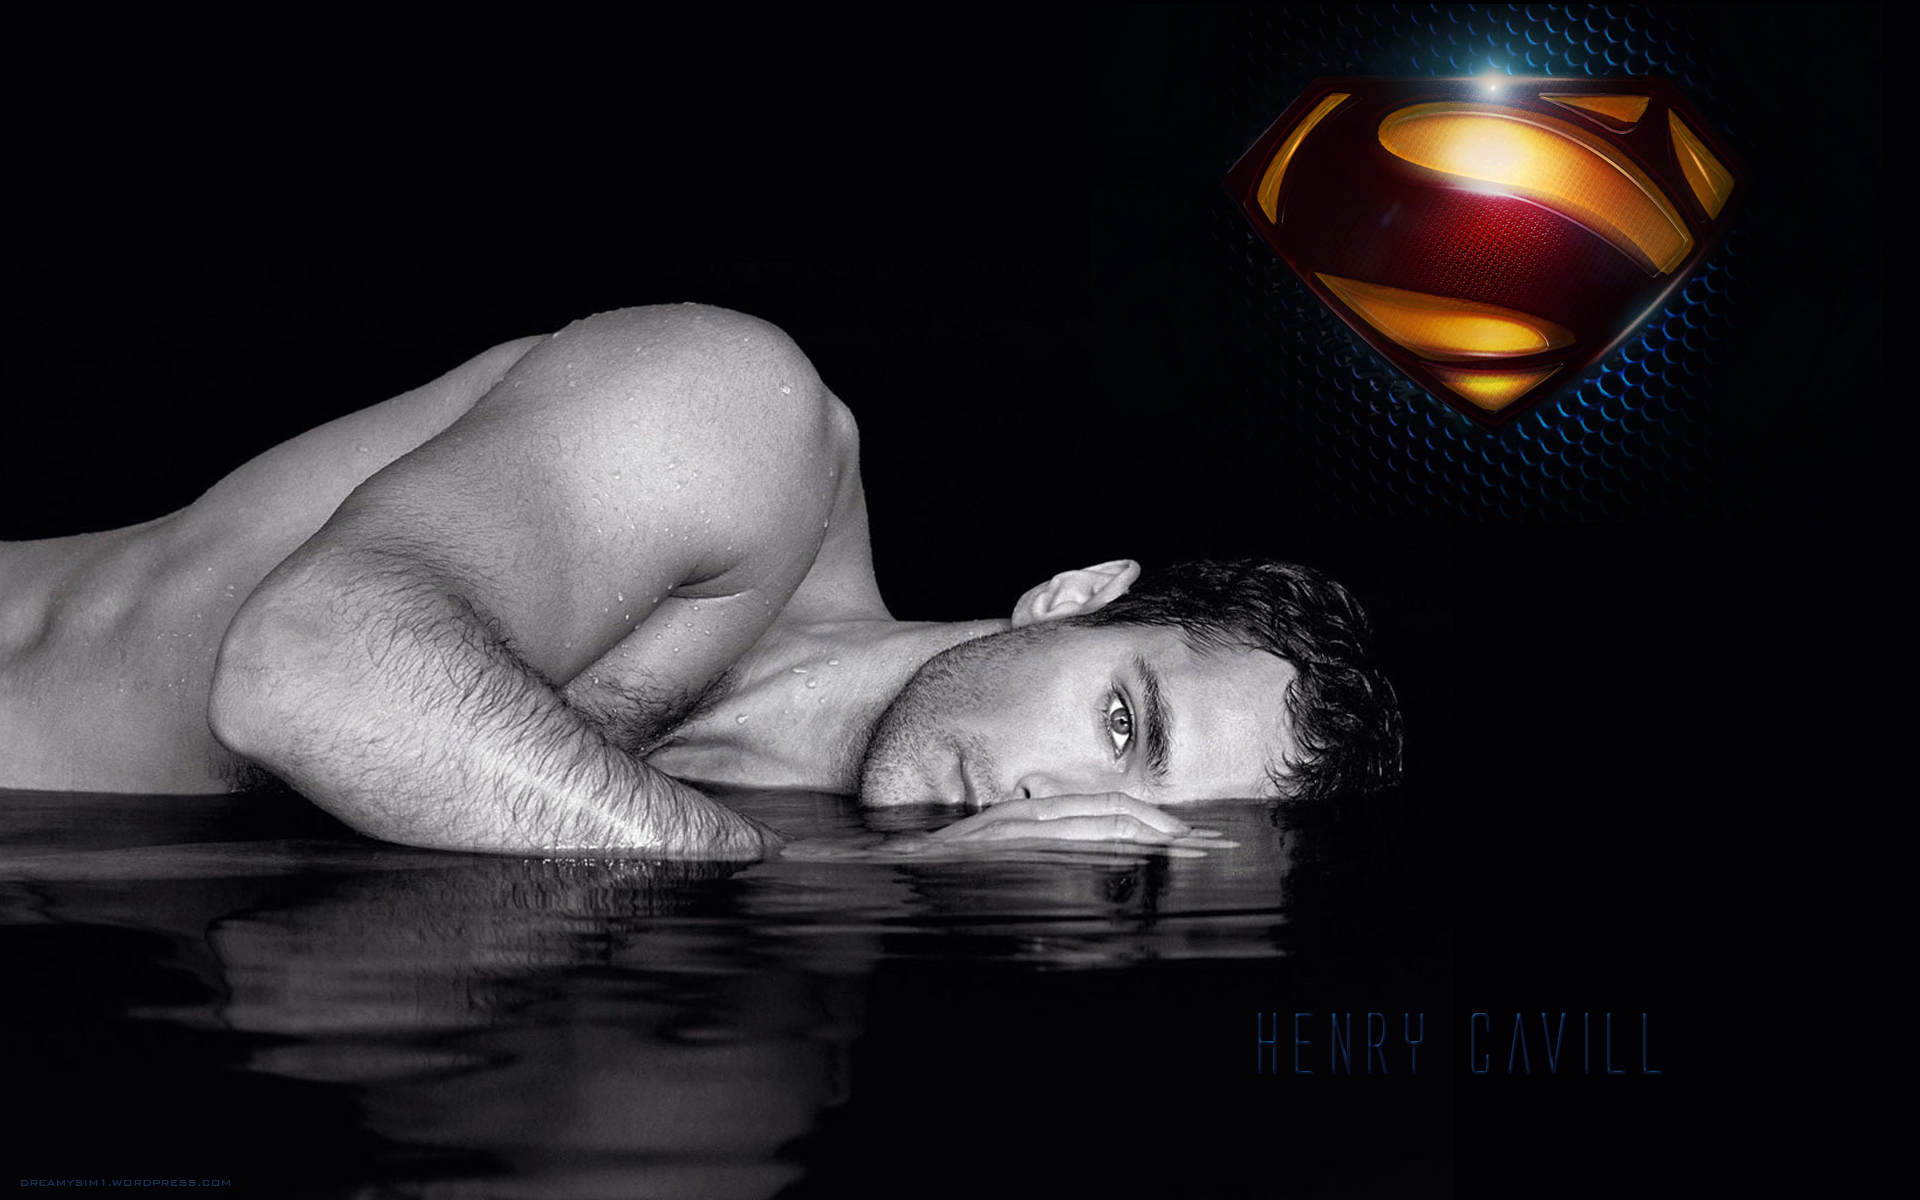 Download Henry Cavill Superman Man Of Steel 2013 HD Wallpaper 3886 1920x1200